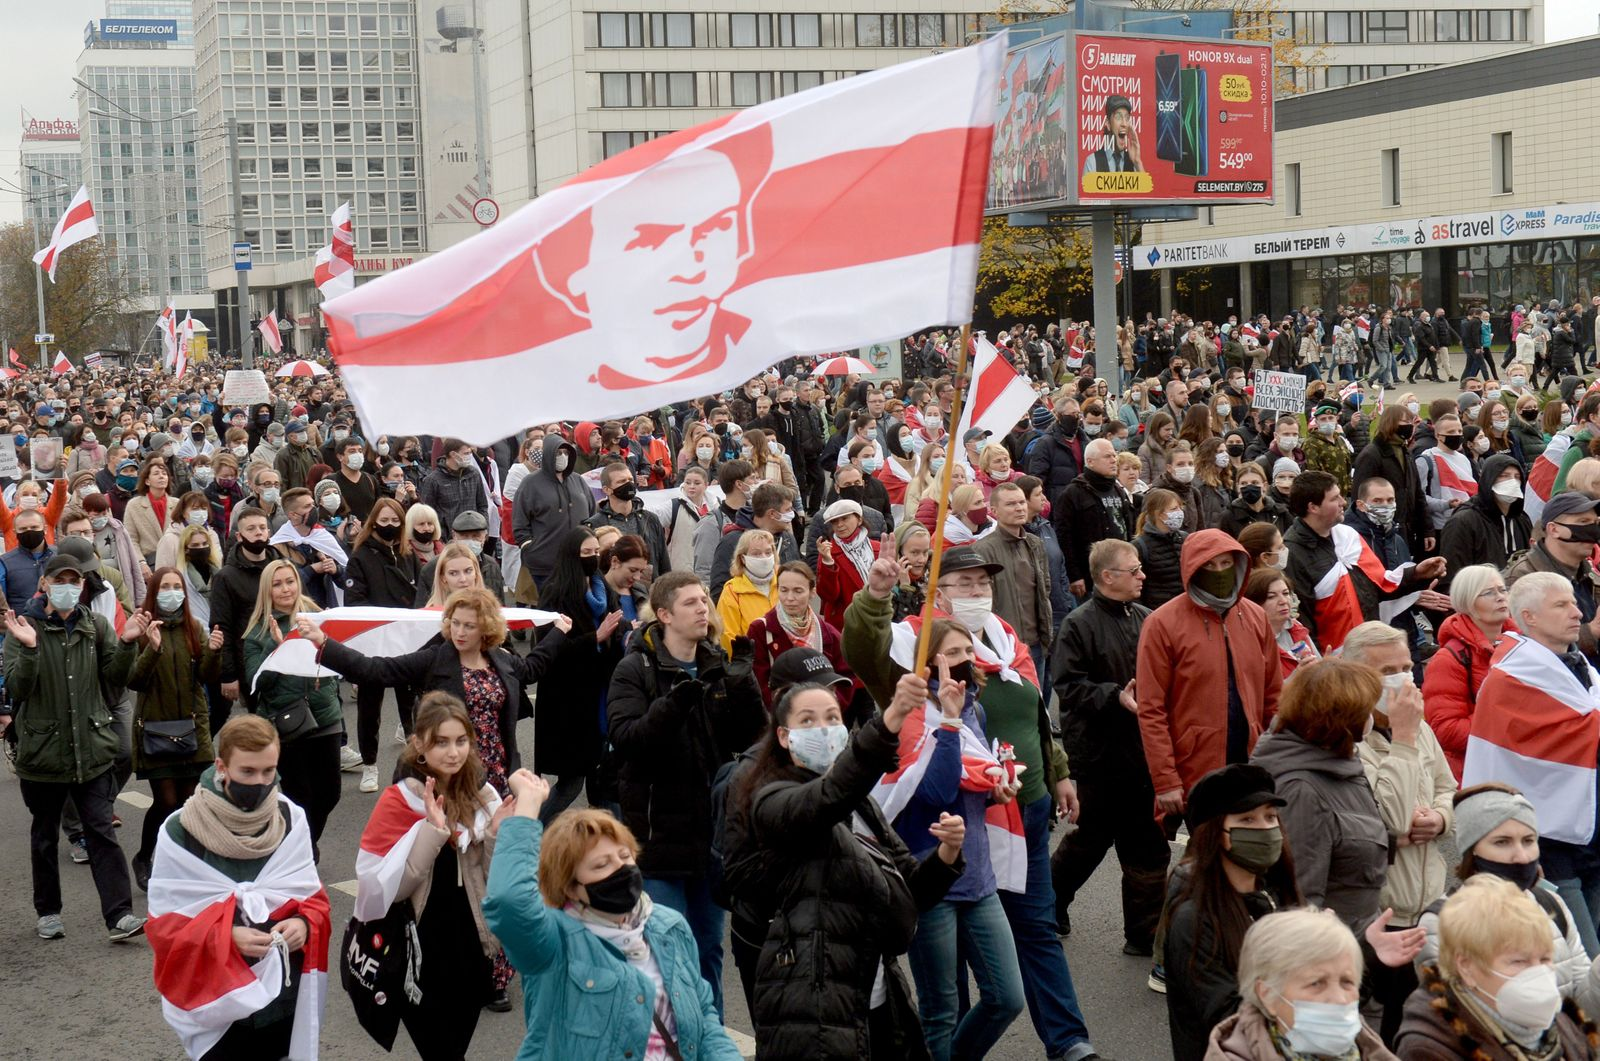 Anti-government protest in Minsk, Belarus - 25 Oct 2020